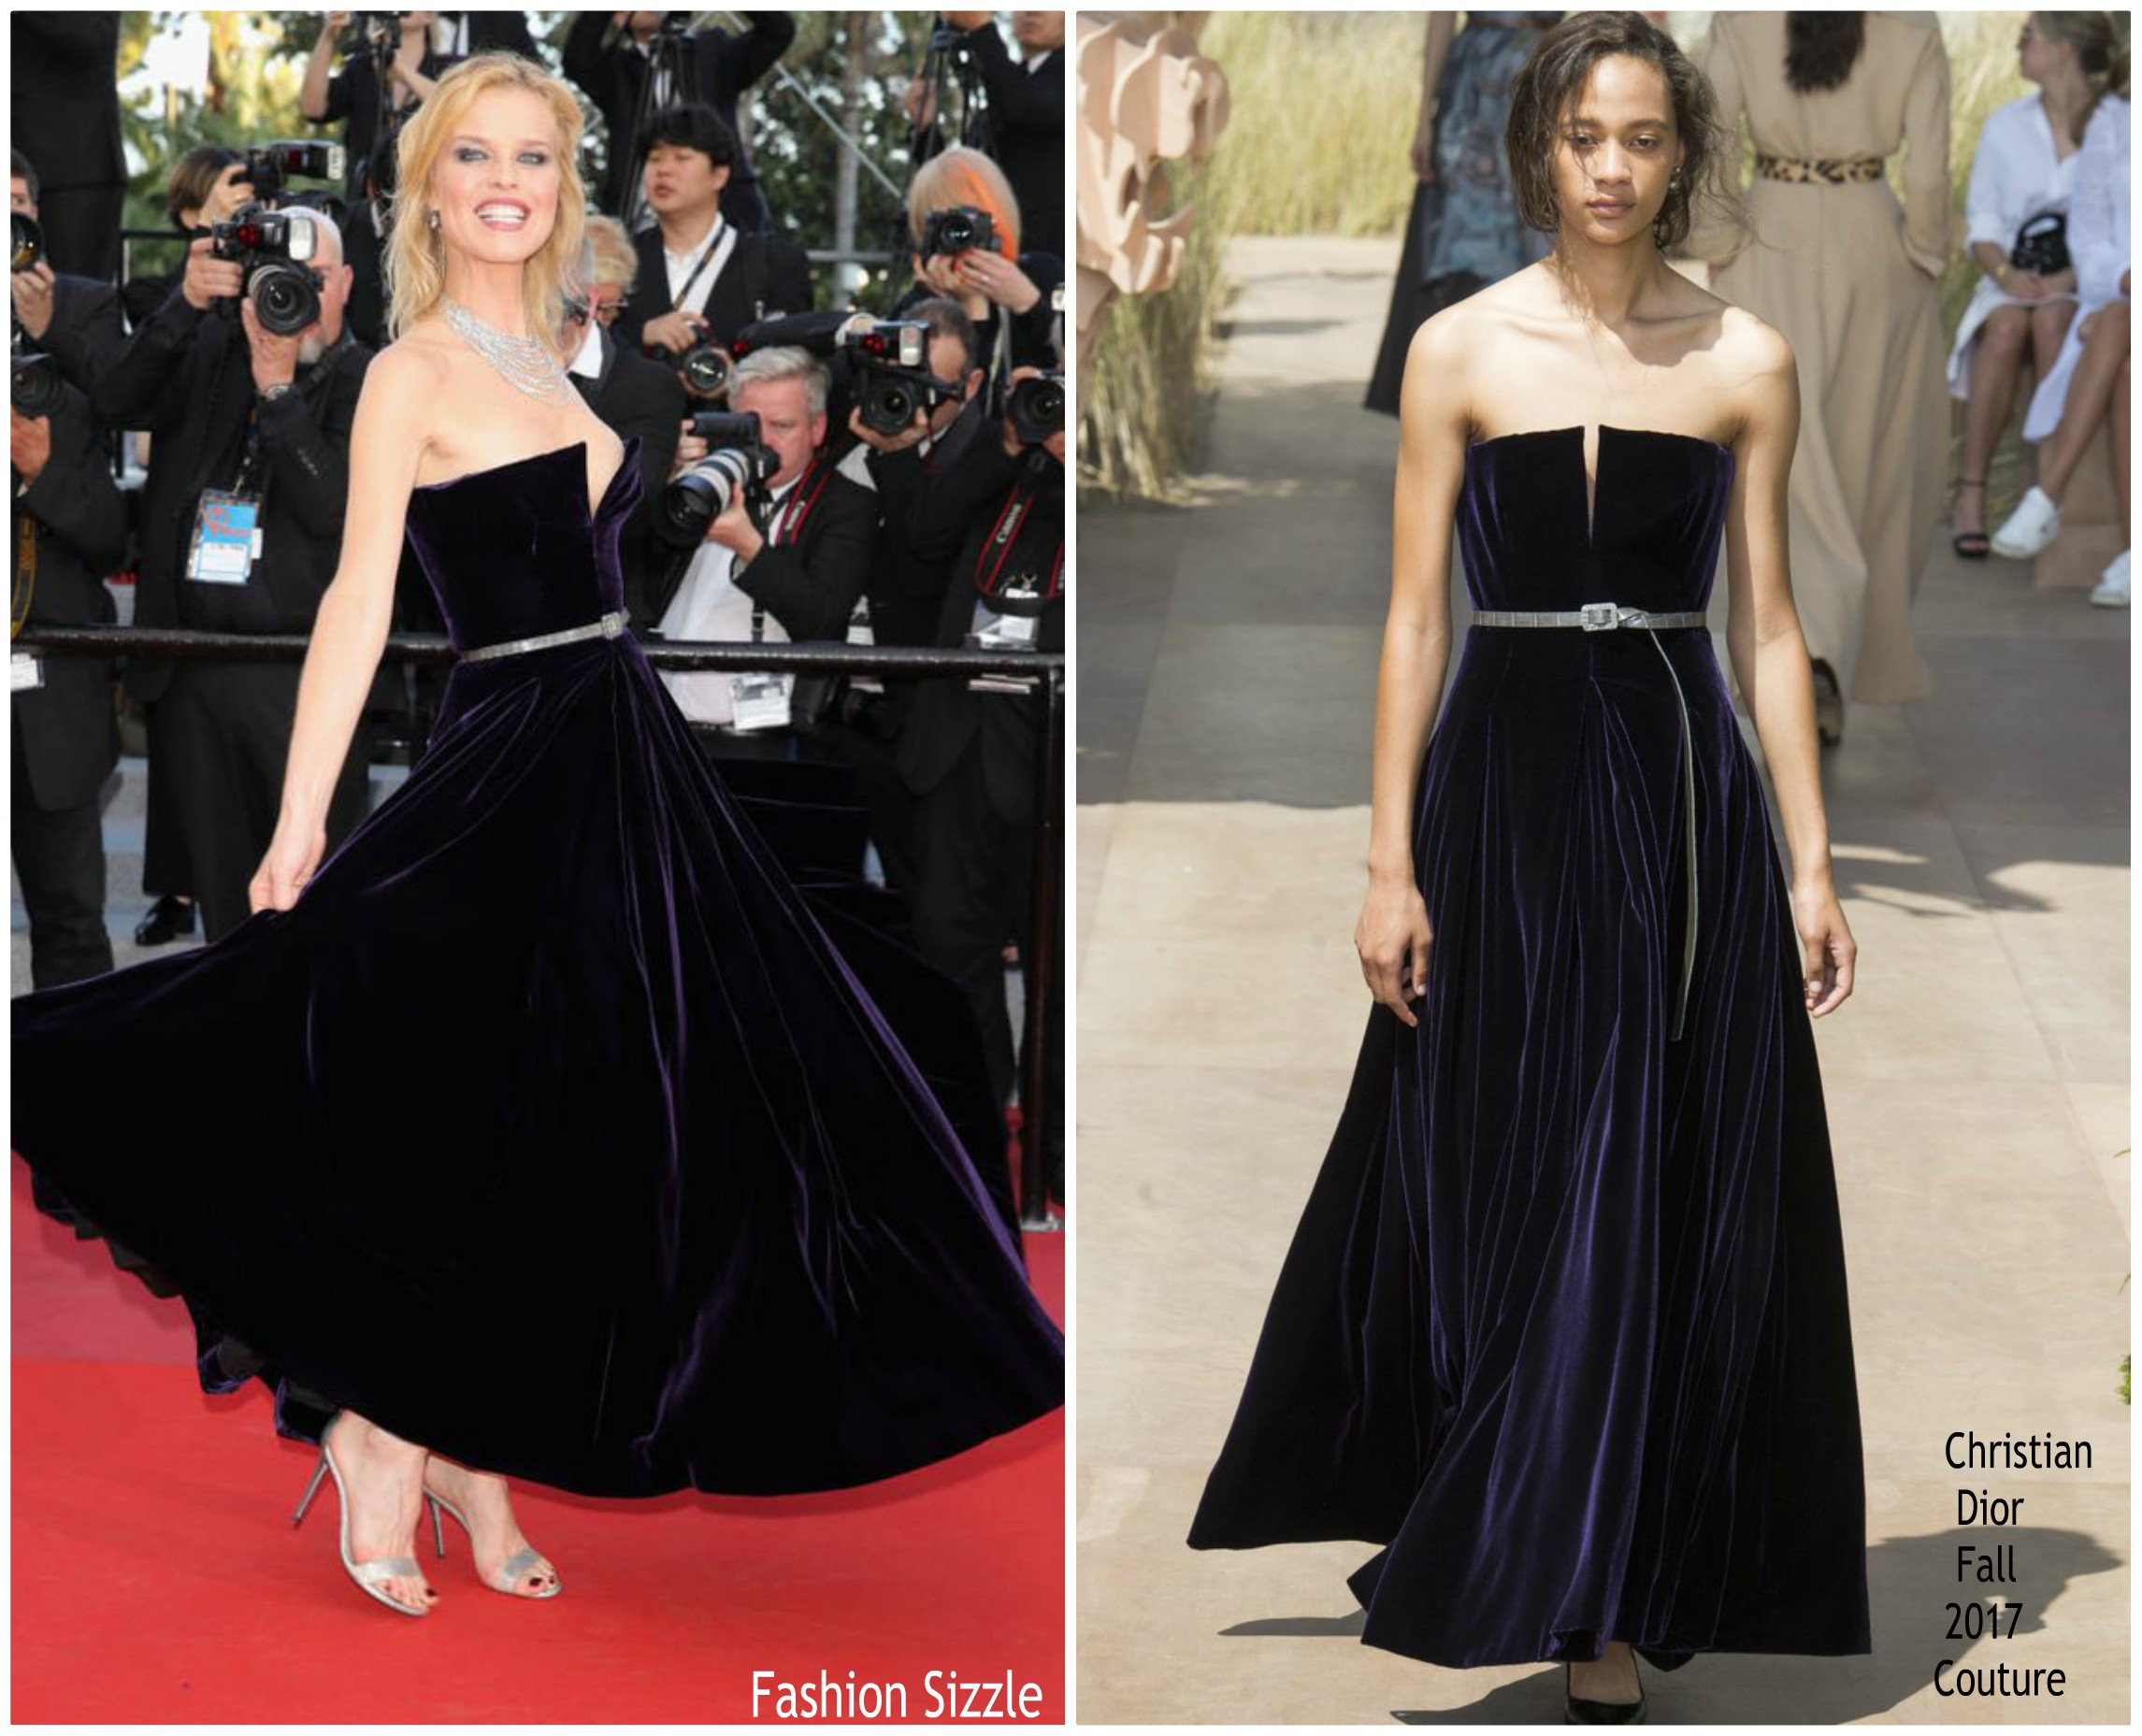 eva-herzigova-inchristian-dior-haute-couture-ash-is-the-purest-white-jiang-hu-er-nv-cannes-film-festival-premiere